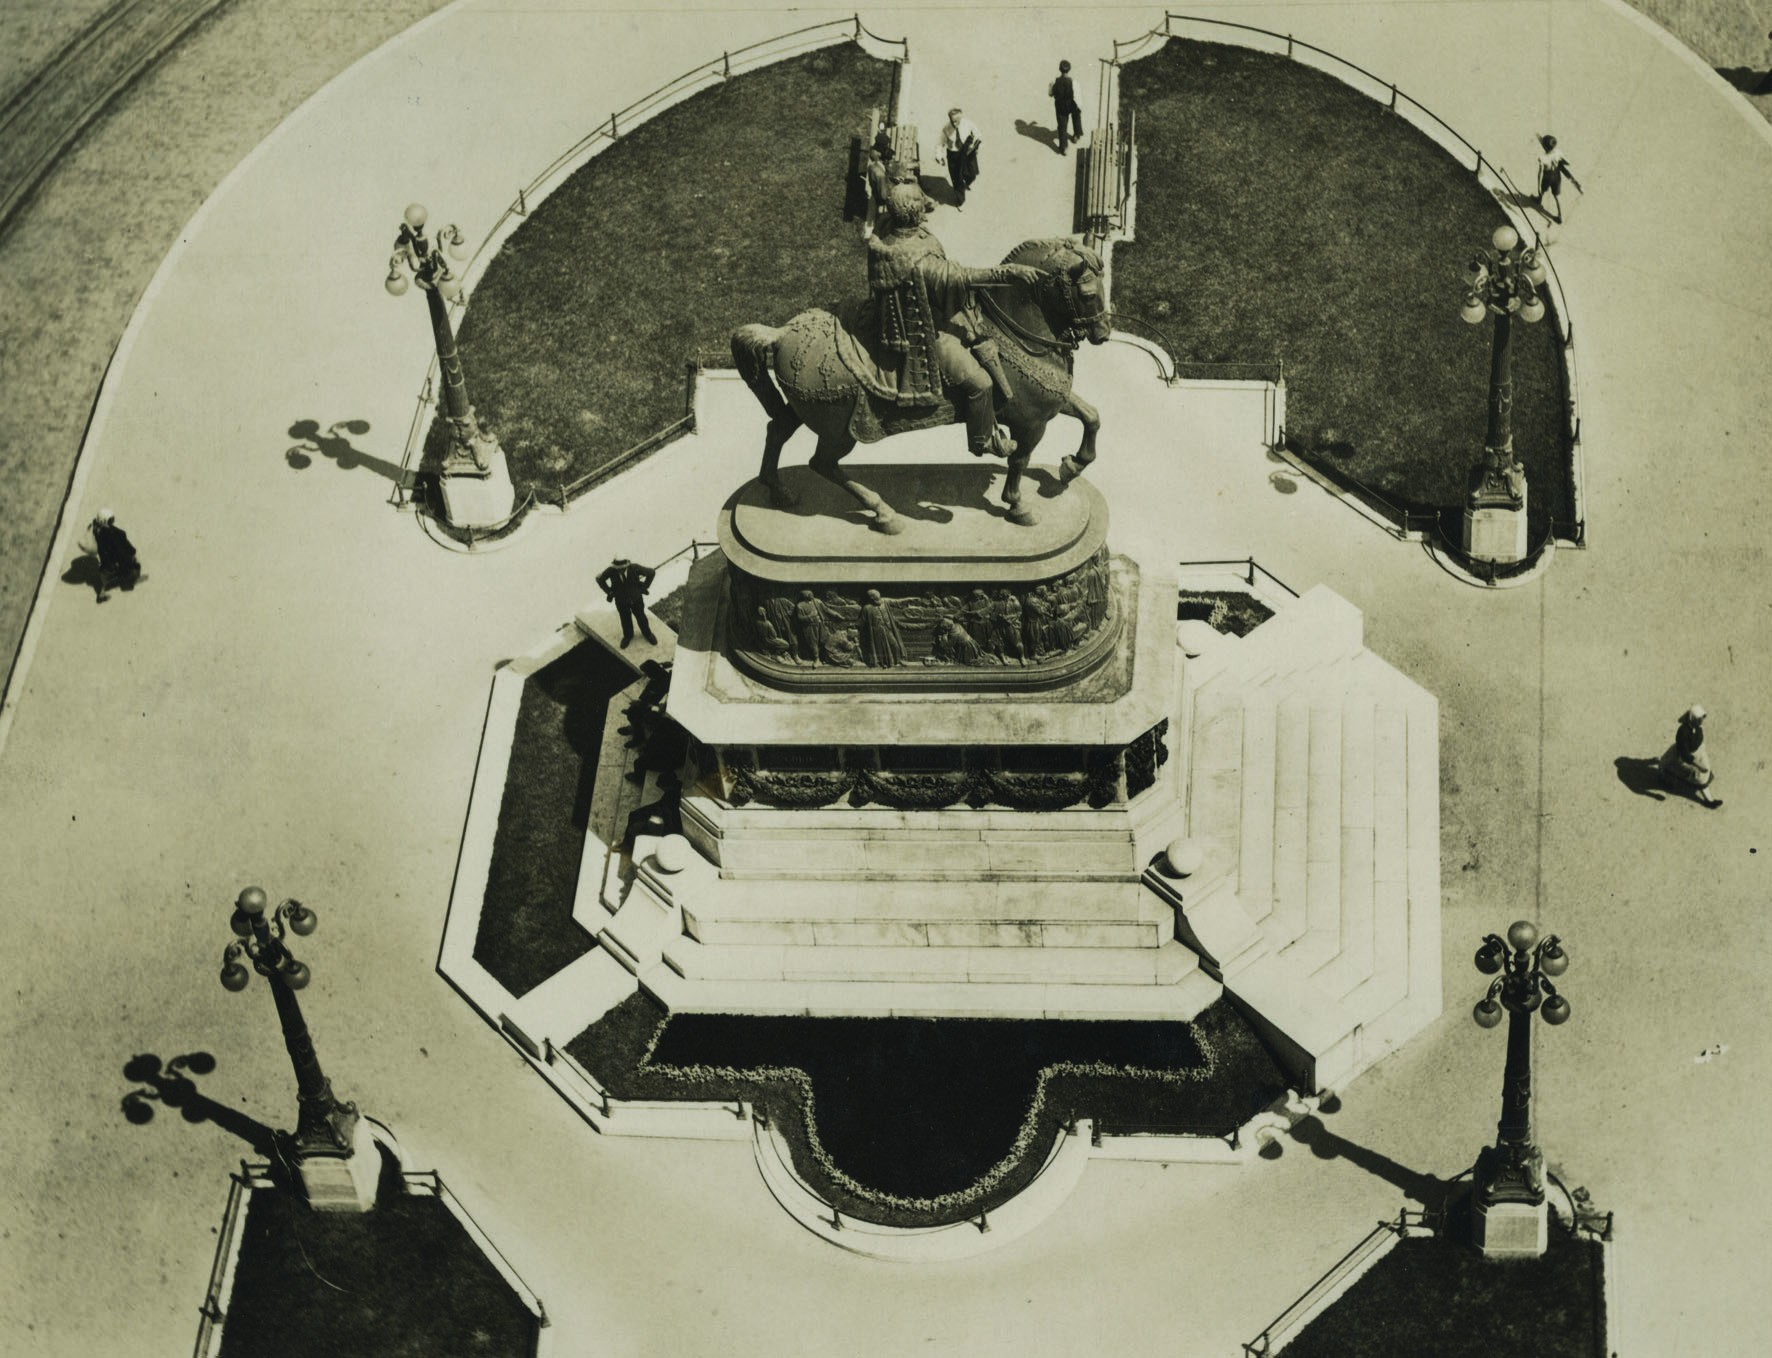 Knez Mihailo's Memorial from above